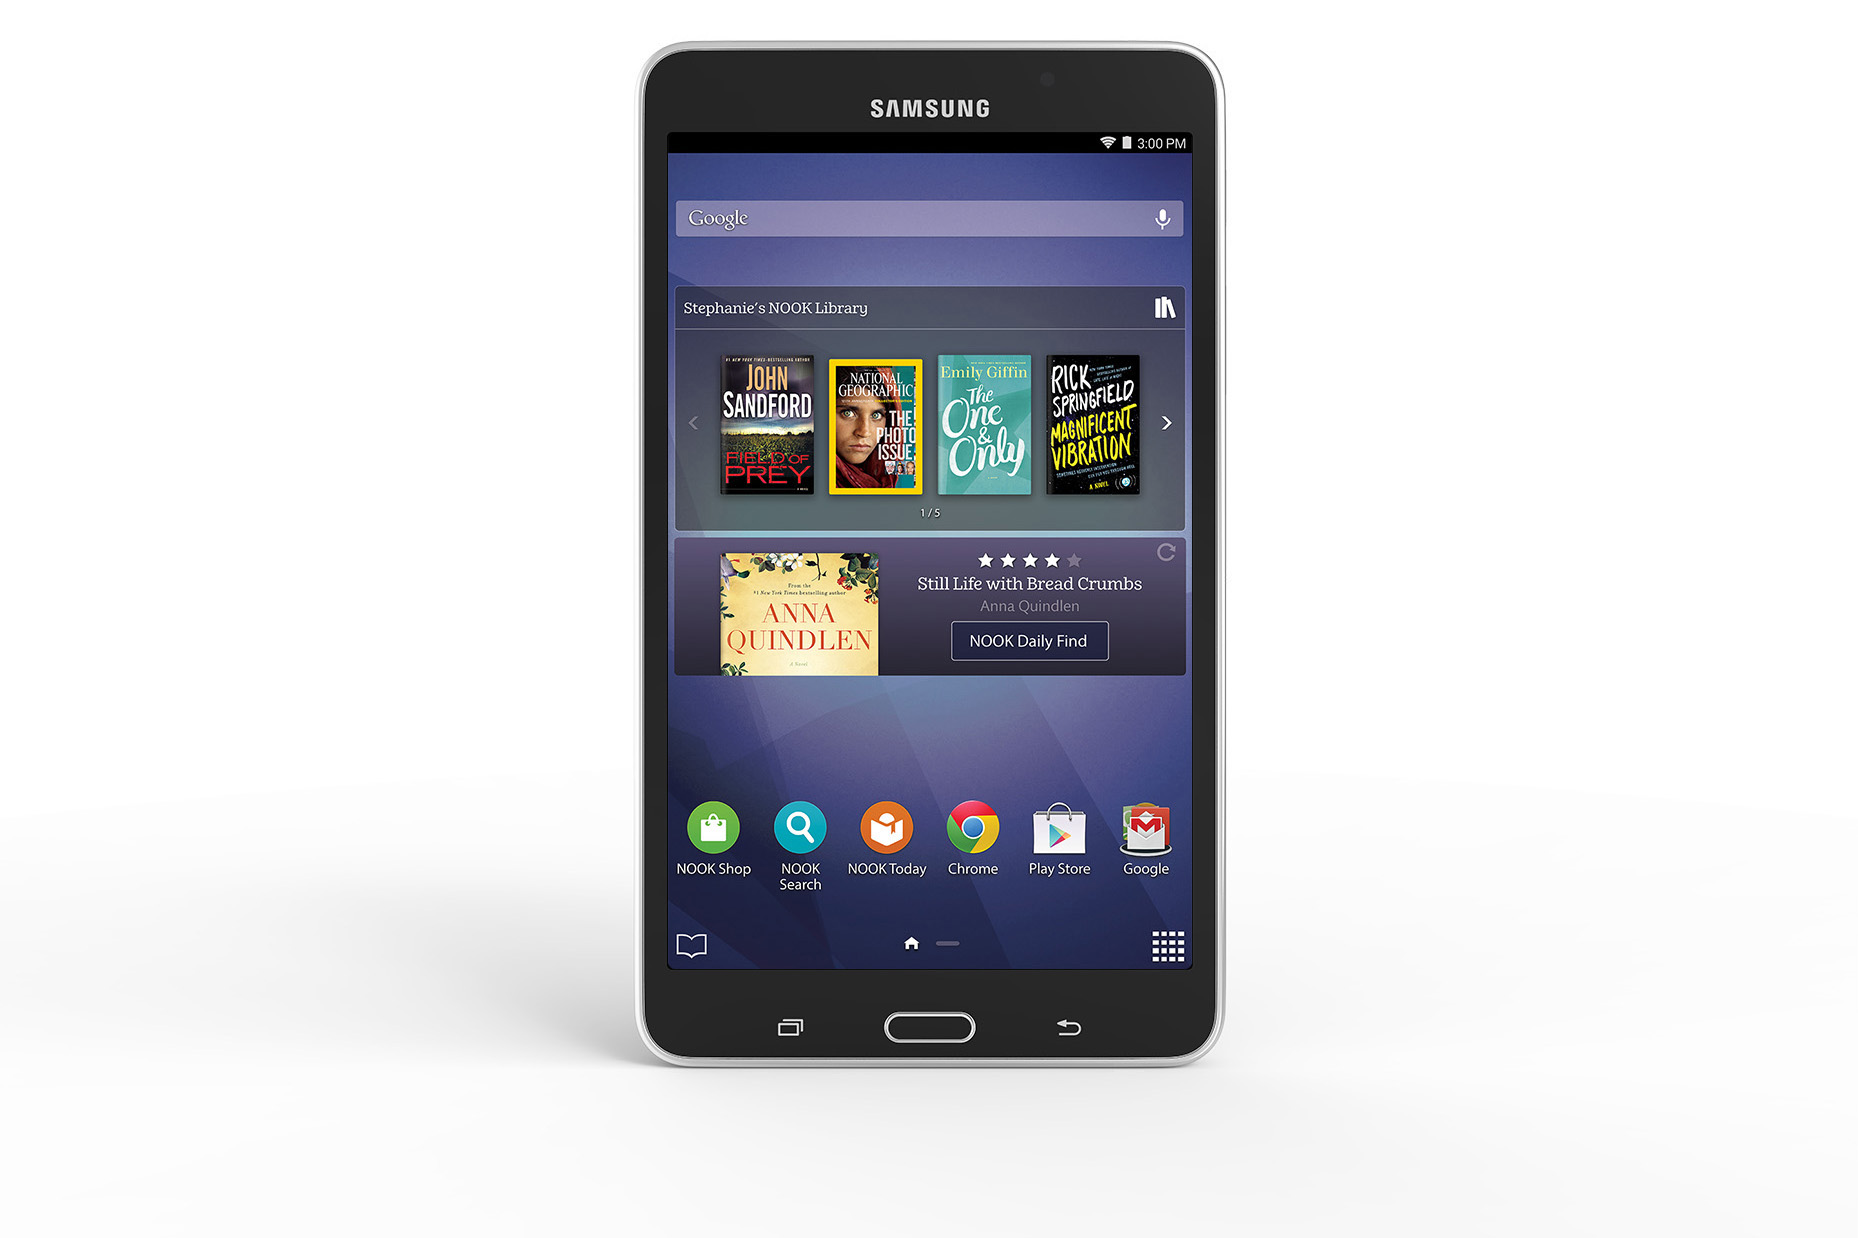 Samsung galaxy tab 4 nook released for 179 for Samsung galaxy 4 tablet